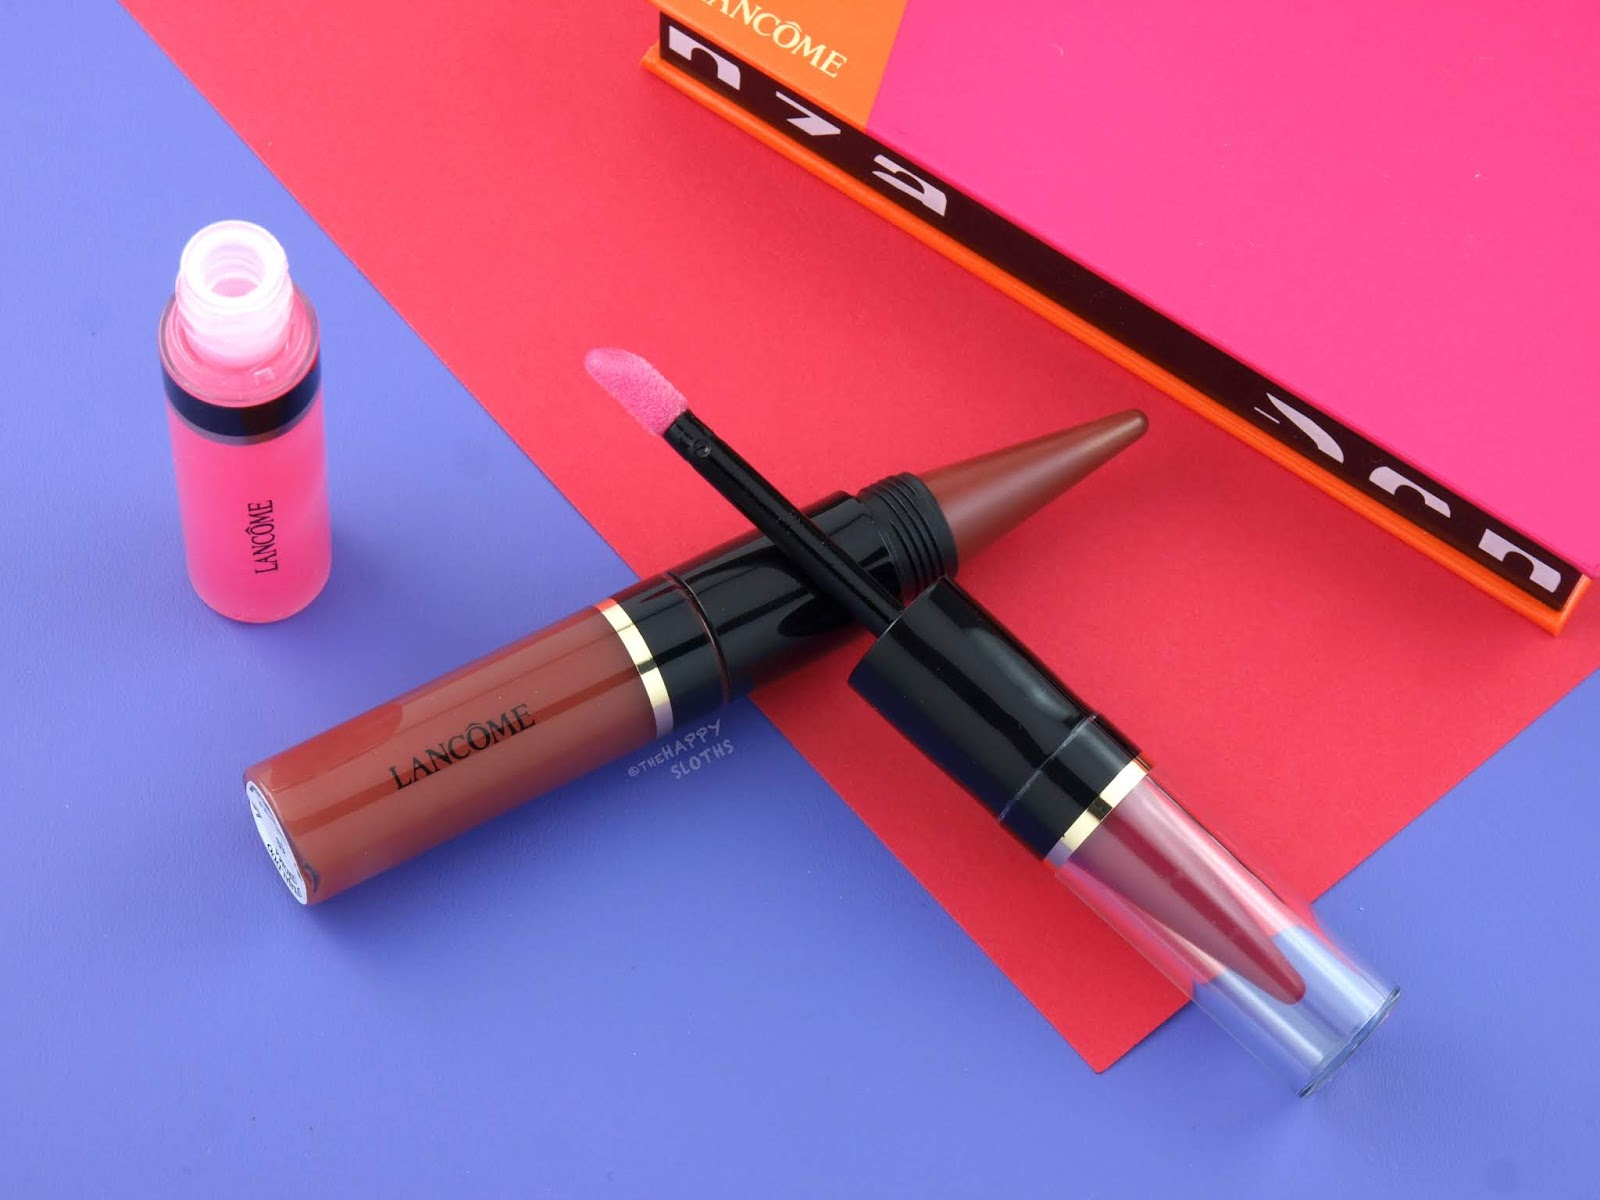 Lancome x Proenza Schouler Fall 2018 Collection | Lip Kajal Duo Chroma High Precision Lipstick & Illuminating Gloss: Review and Swatches